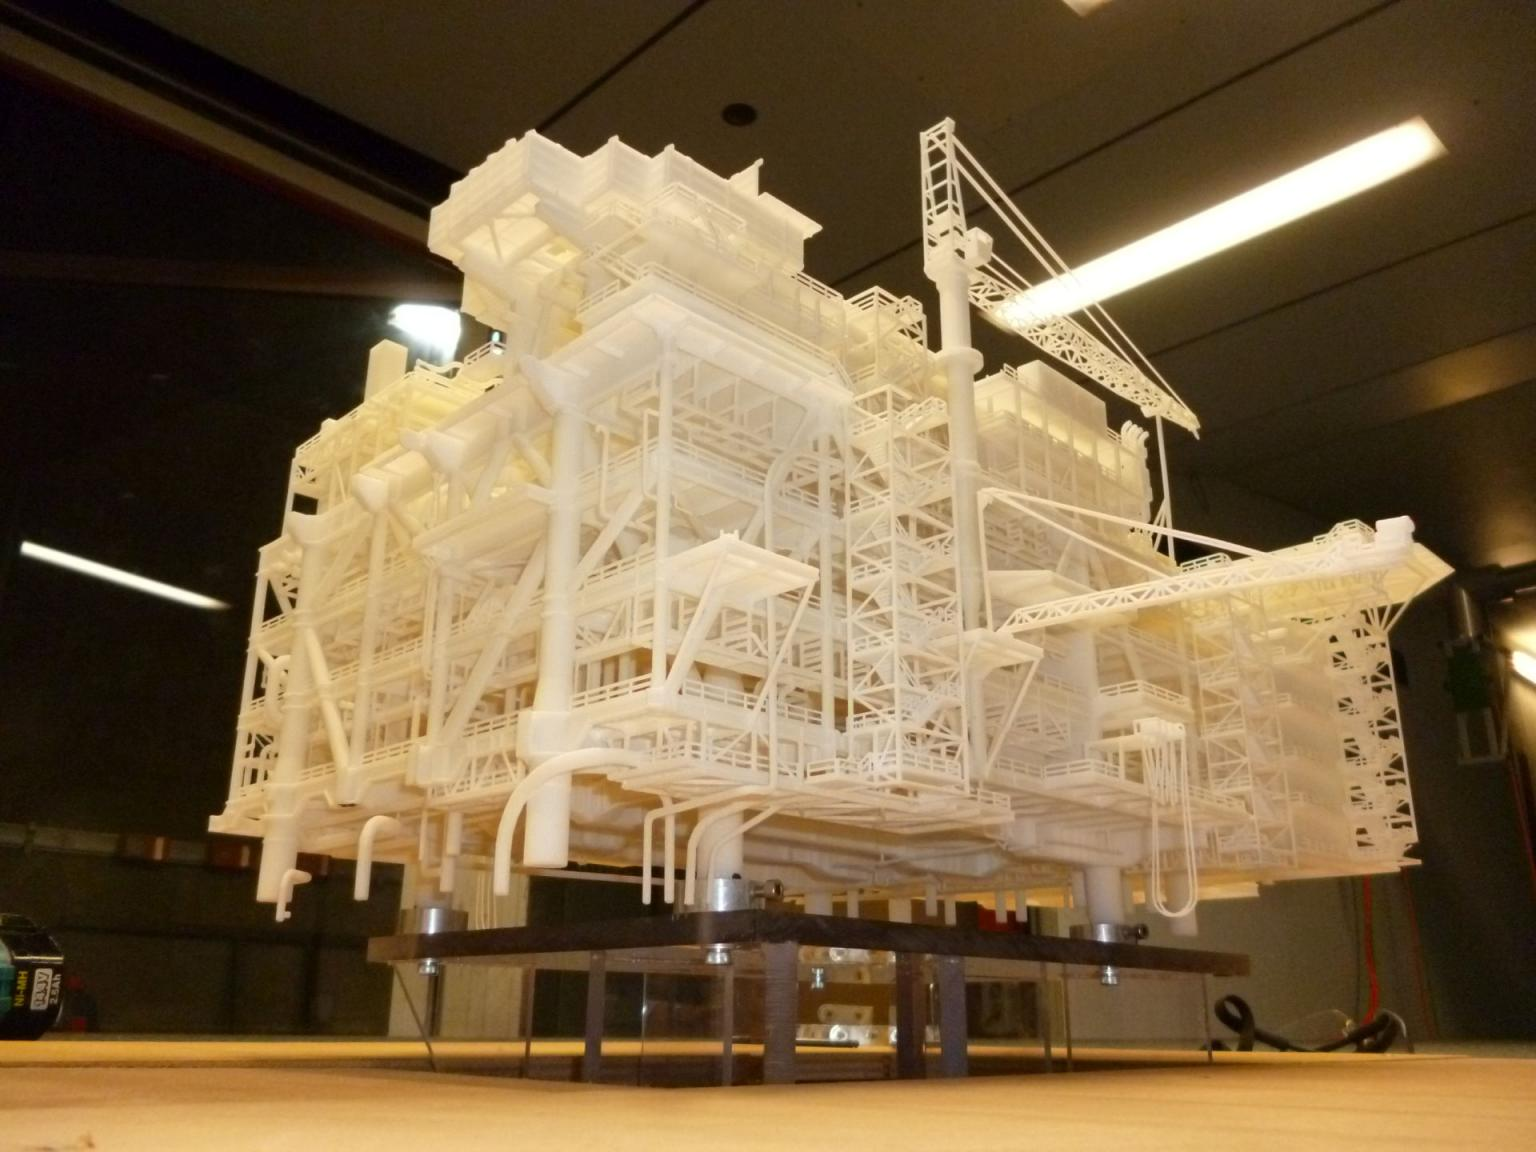 Full-featured 3D printed model used in wind tunnel and wave-basin testing